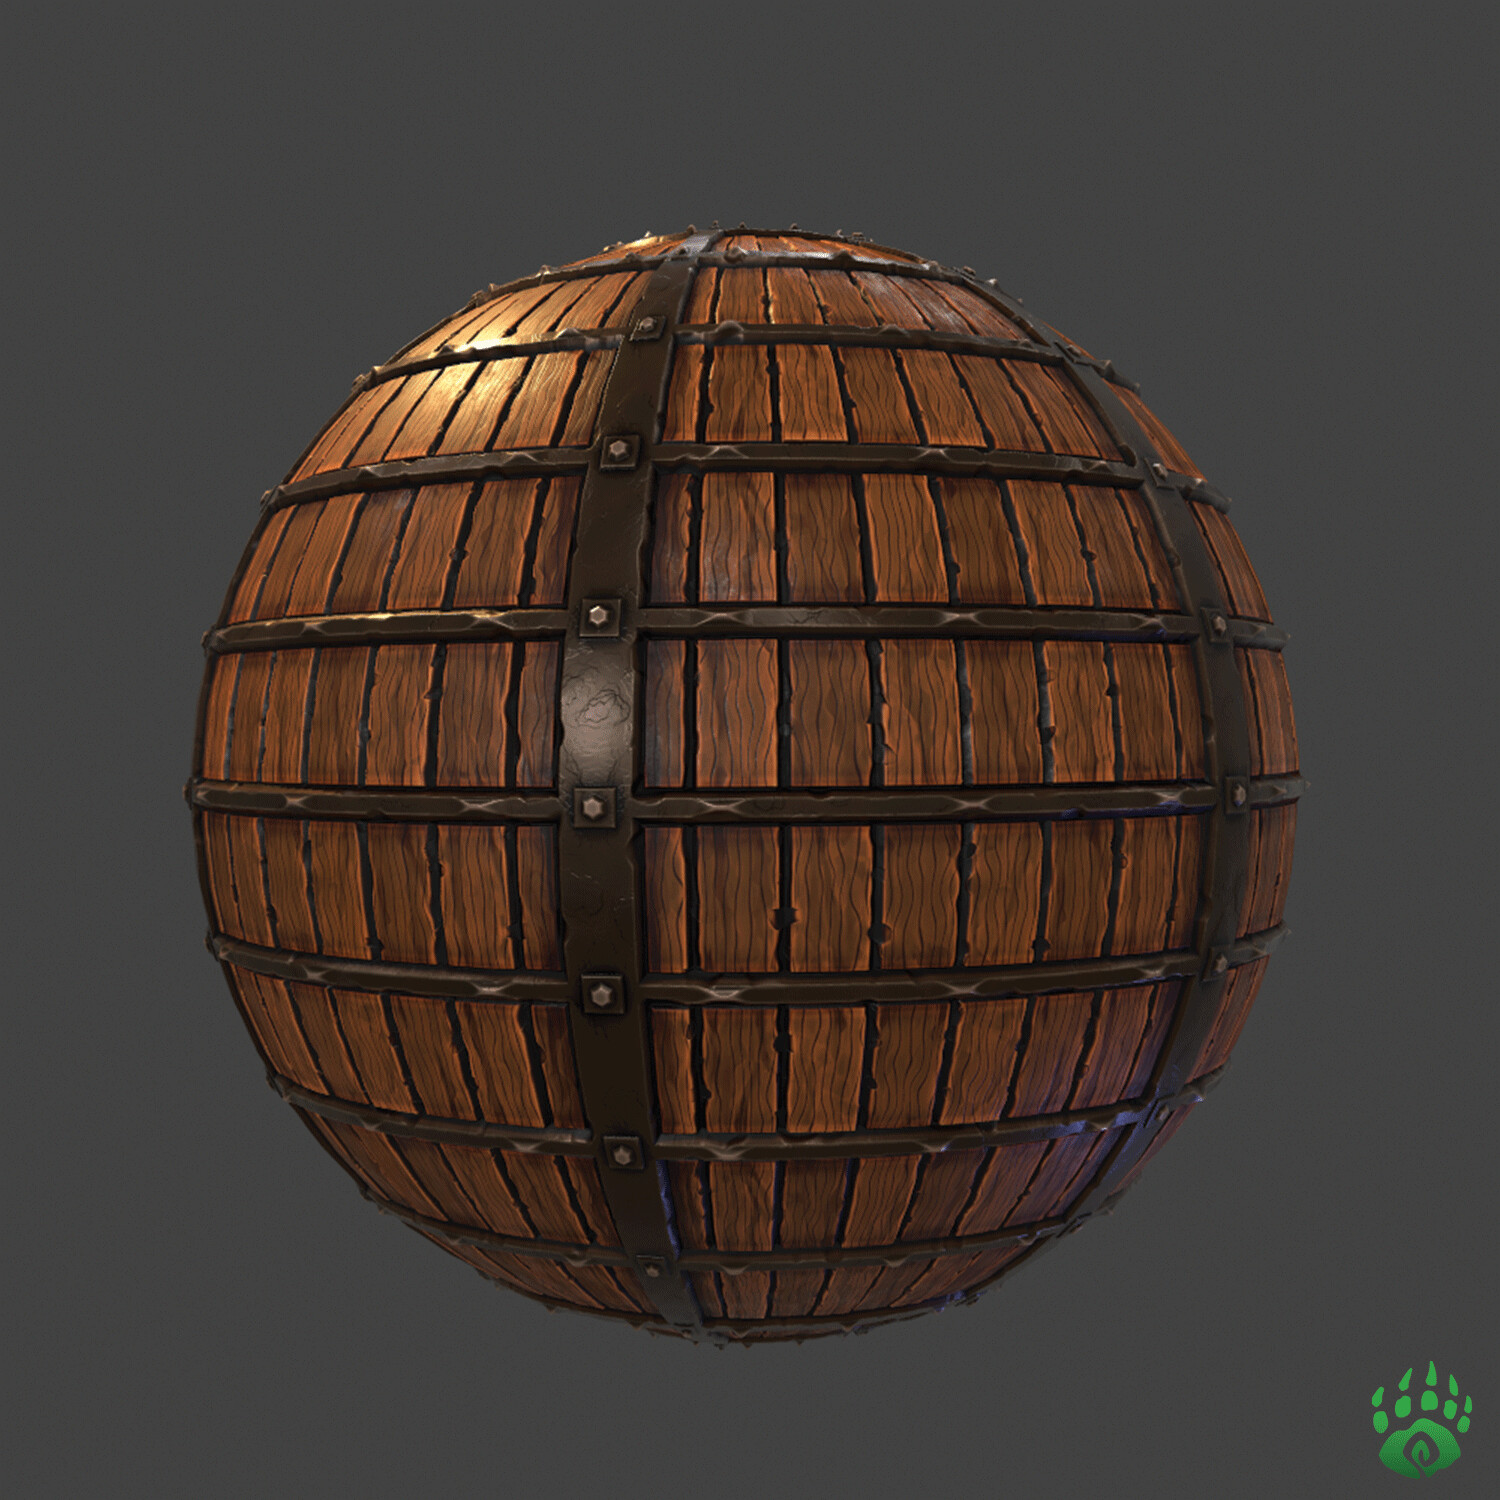 Stylized wood and metal material